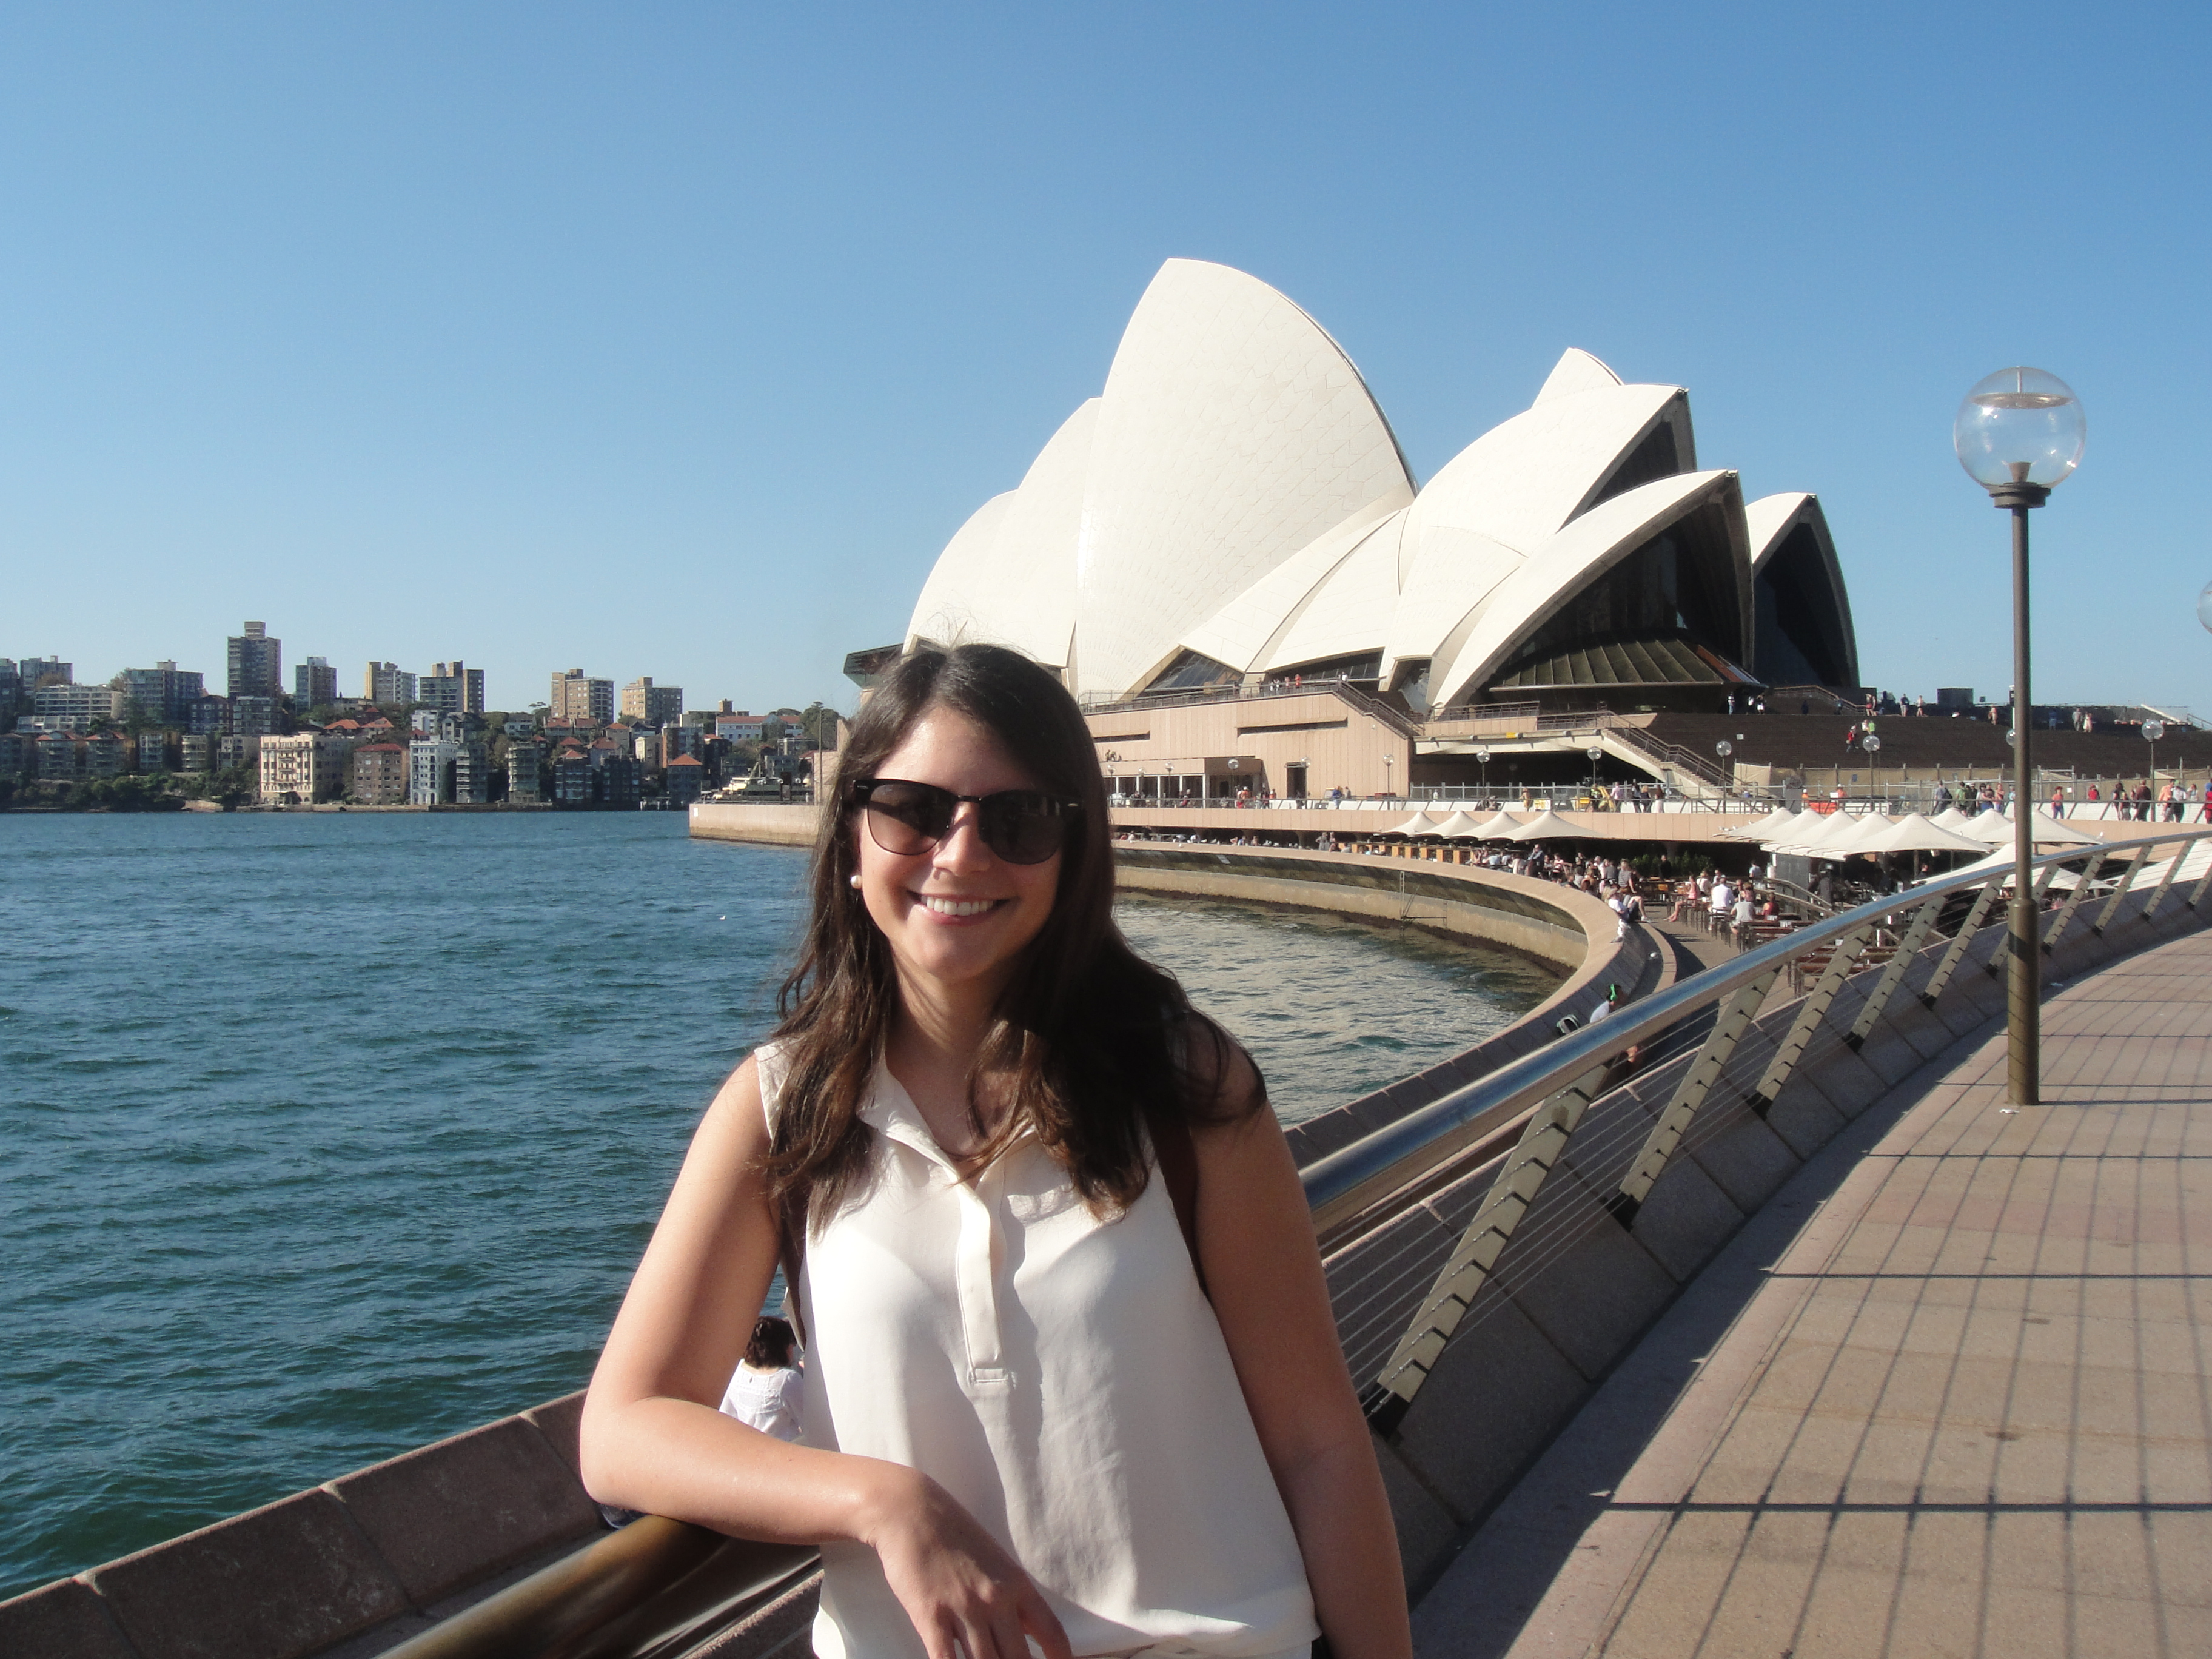 the sydney opera house tourism essay The sydney opera house is today known to be the busiest performing arts centre in the world since project completion and its subsequent opening in 1973, it has brought countless hours of entertainment to millions of people and has attracted world class talent to this day.